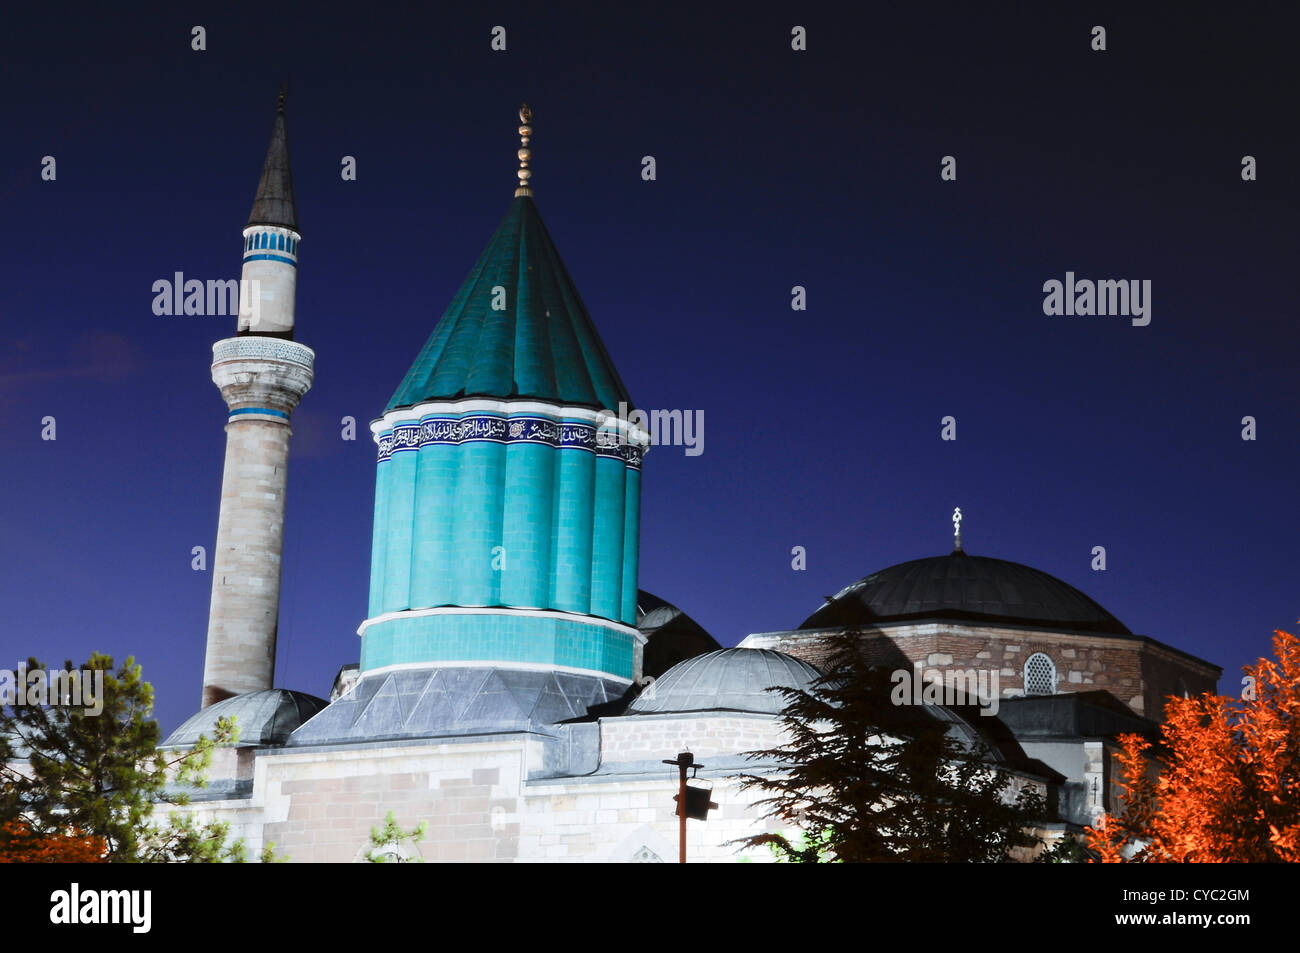 Mosque in Turkey - Stock Image